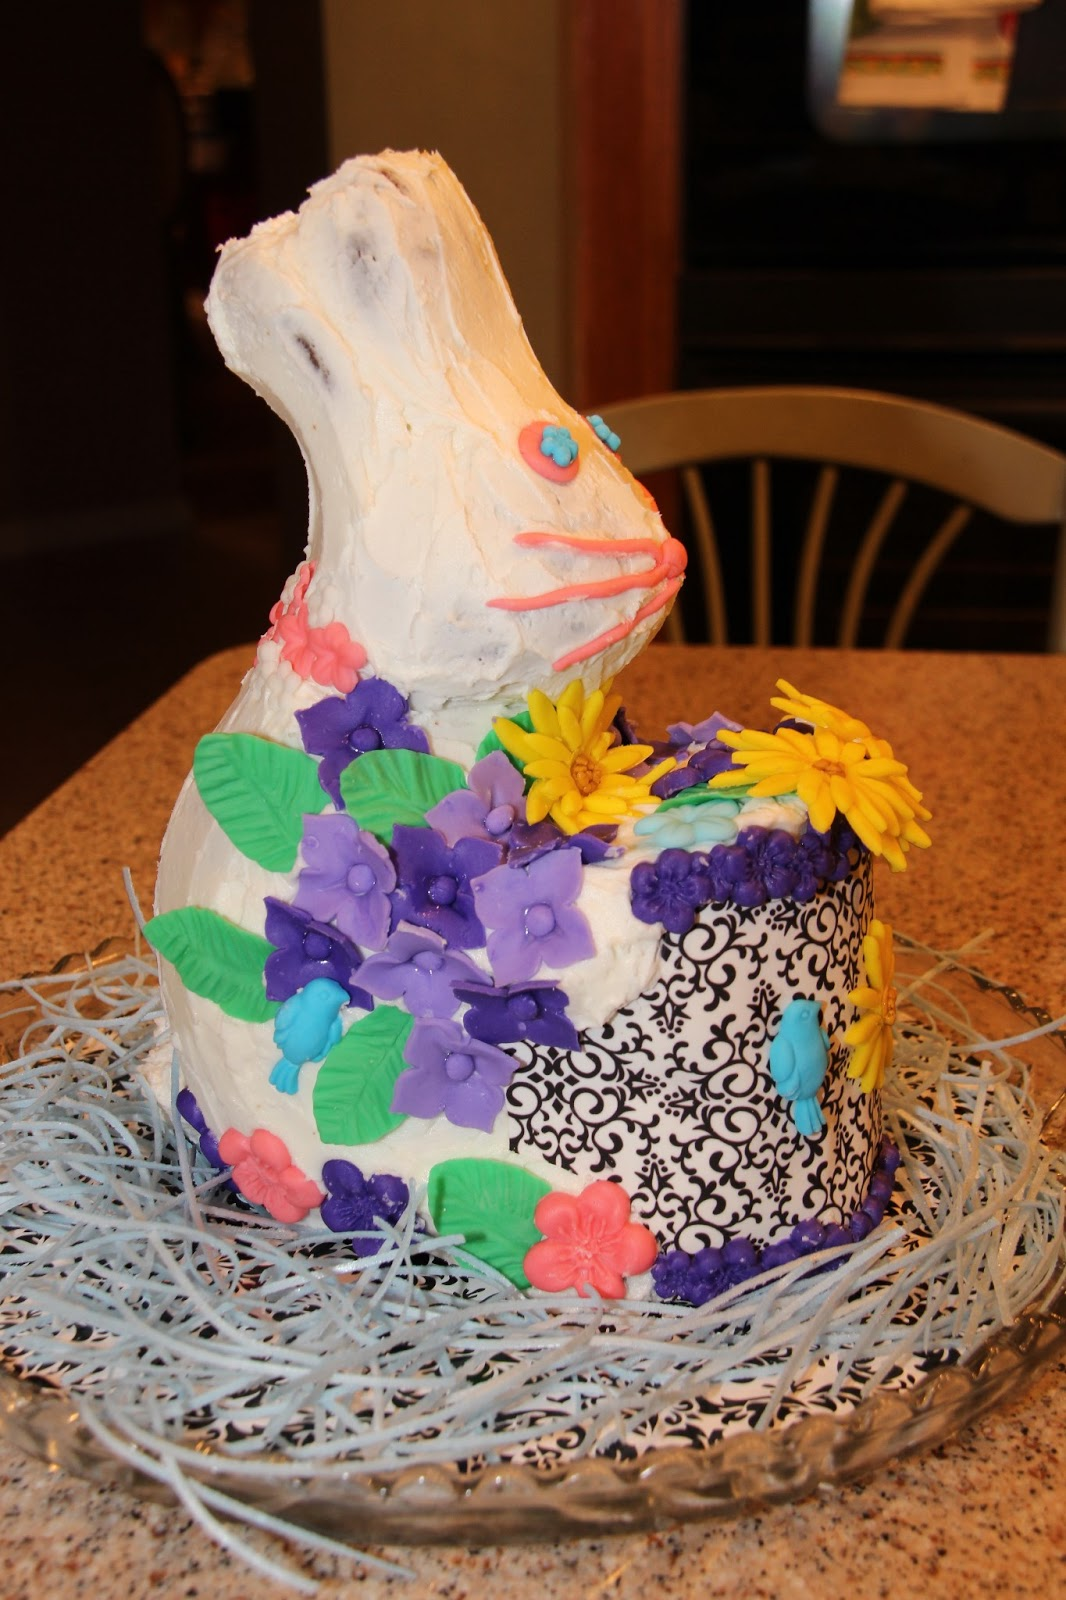 Edible Cake Images Michaels : Family Heritage Cookbook: Easter Bunny Cake with Fondant ...